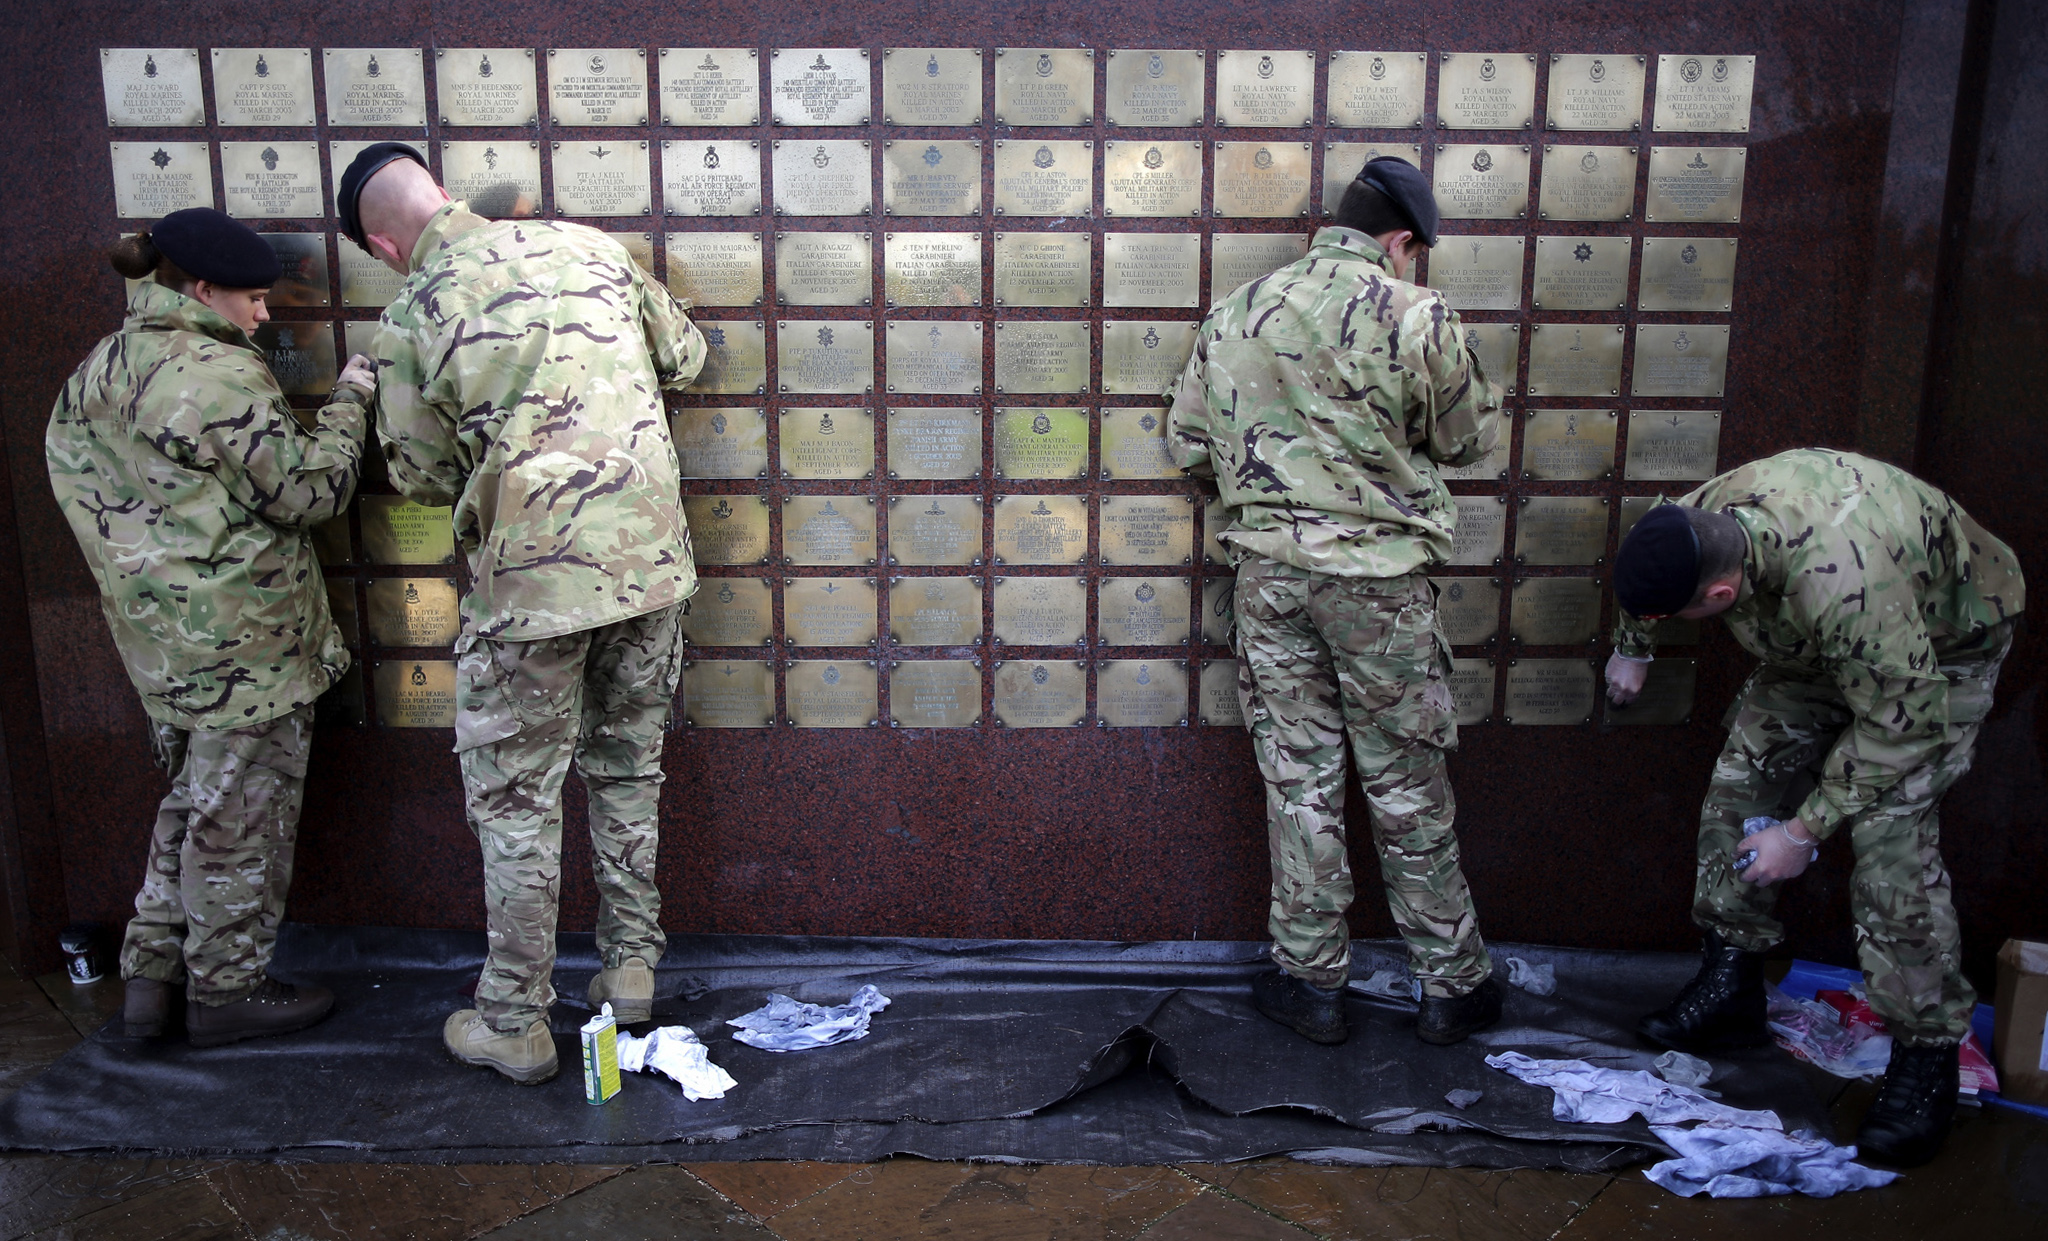 Soldiers of 256 Squadron of The Royal Signals clean and prepare The Basra Wall ahead of Armistice Day at The National Memorial Arboretum in Alrewas, Staffordshire.